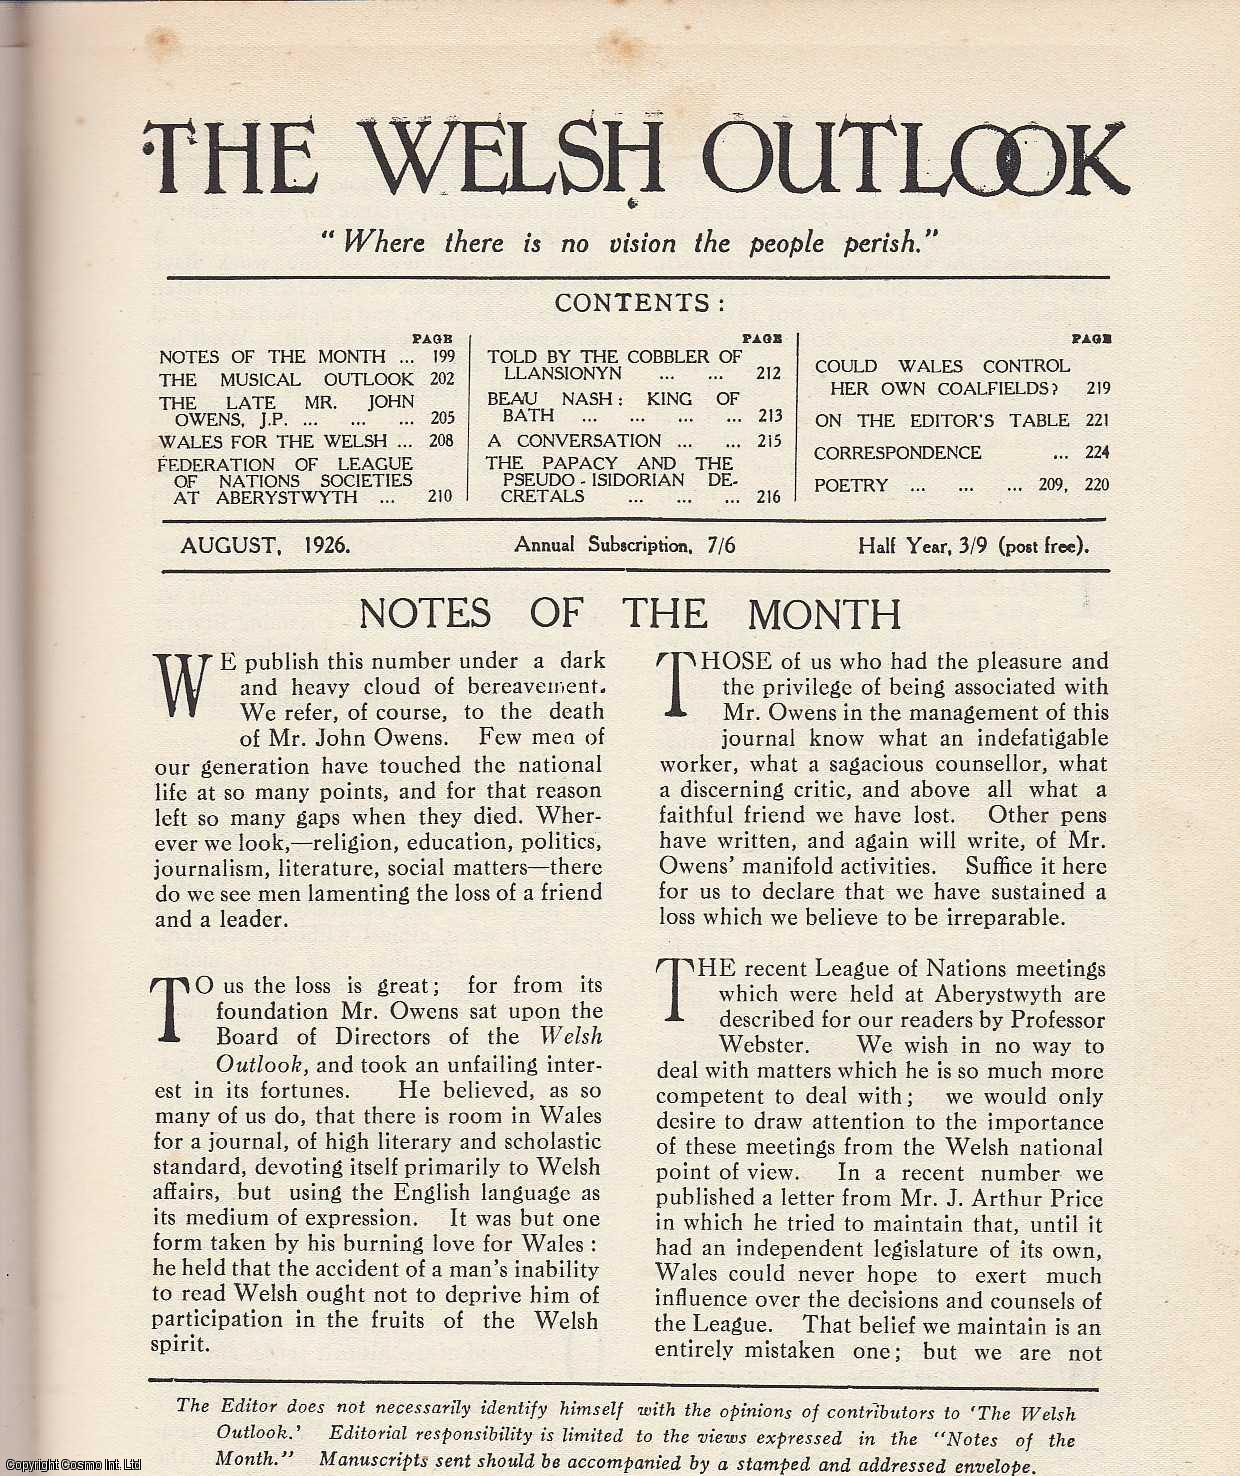 The Welsh Outlook. A Monthly Journal of National Social Progress. August, 1926. Contains; The Musical Outlook by Sir Walford Davies; The Late Mr. John Owens, J.P. by R.R. Williams; Wales for The Welsh: What Then? by E. Ebrard Rees; Federation of League of Nations Societies at Aberystwyth by Professor Webster; Told by The Cobbler of Llansionyn by R. Lloyd Hughes; Beau Nash: King of Bath by Idris Williams; A Conversation: Between Mr. Love-The-Lord and Mr. Moralman, of Chalfont St. Giles by Elined Kotschnig-Prys; The Papacy and The Pseudo-Isidorian Decretals by J.E. de Hirsch-Davies; Could Wales Control Her Own Coalfields: A Nationalist Viewpoint by W. Tudor Davies., Thomas Jones (Editor)